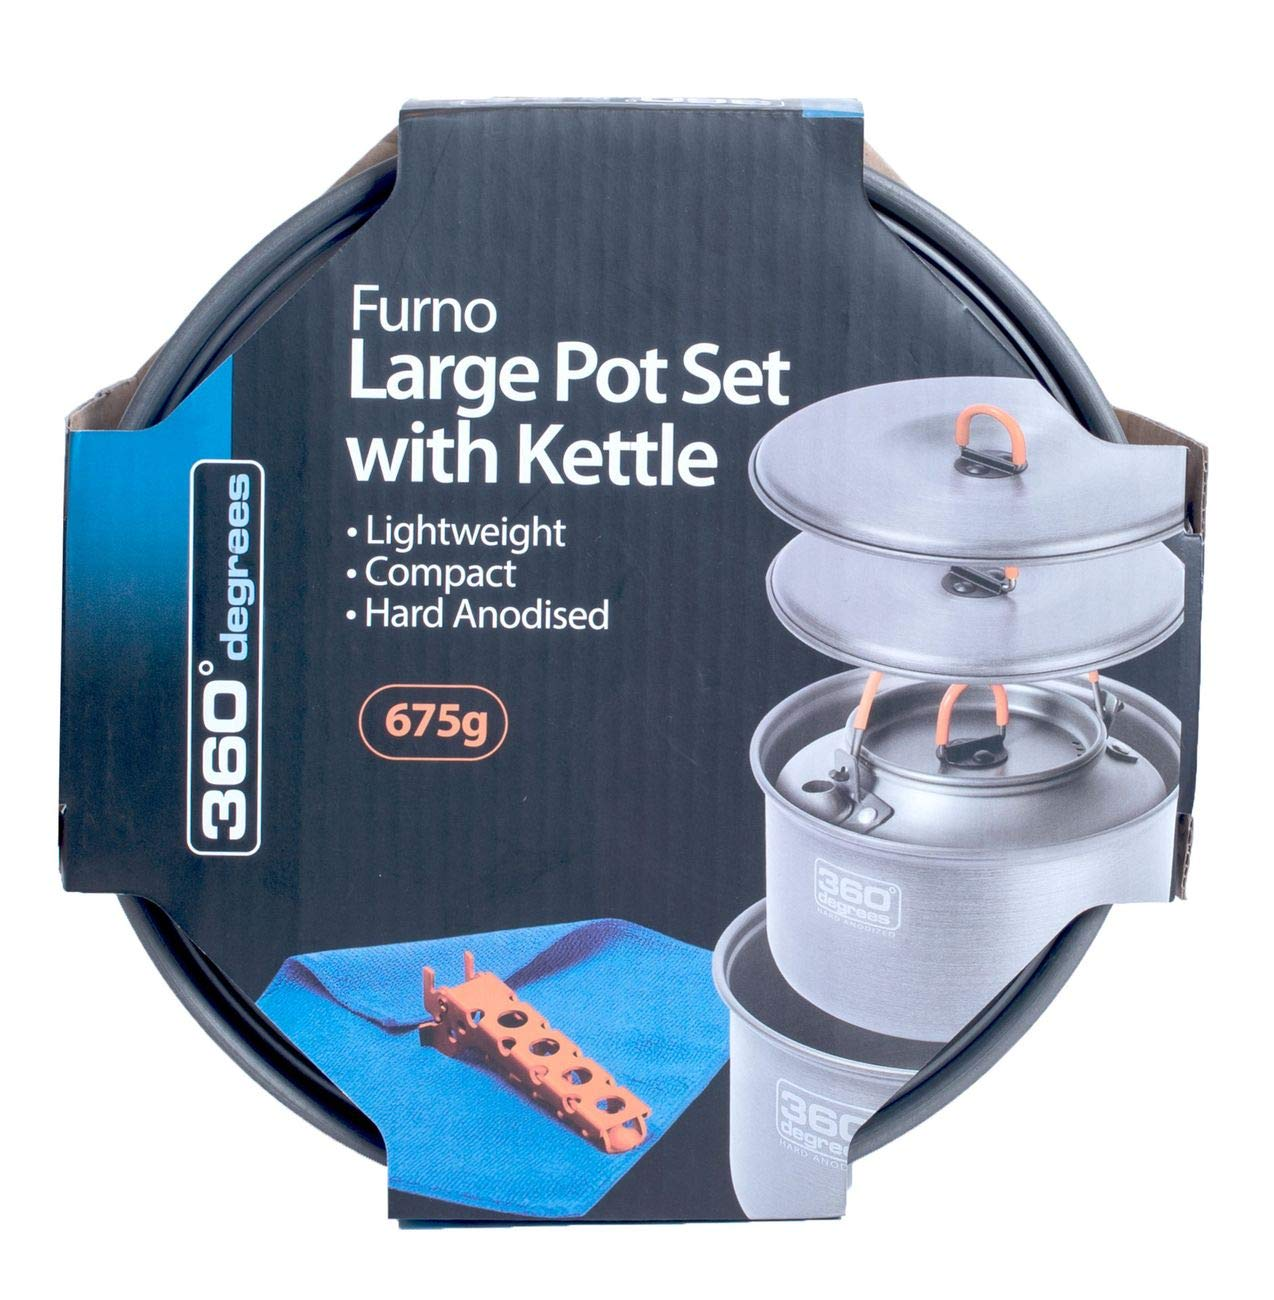 360° Furno Large Pot Set with Kettle